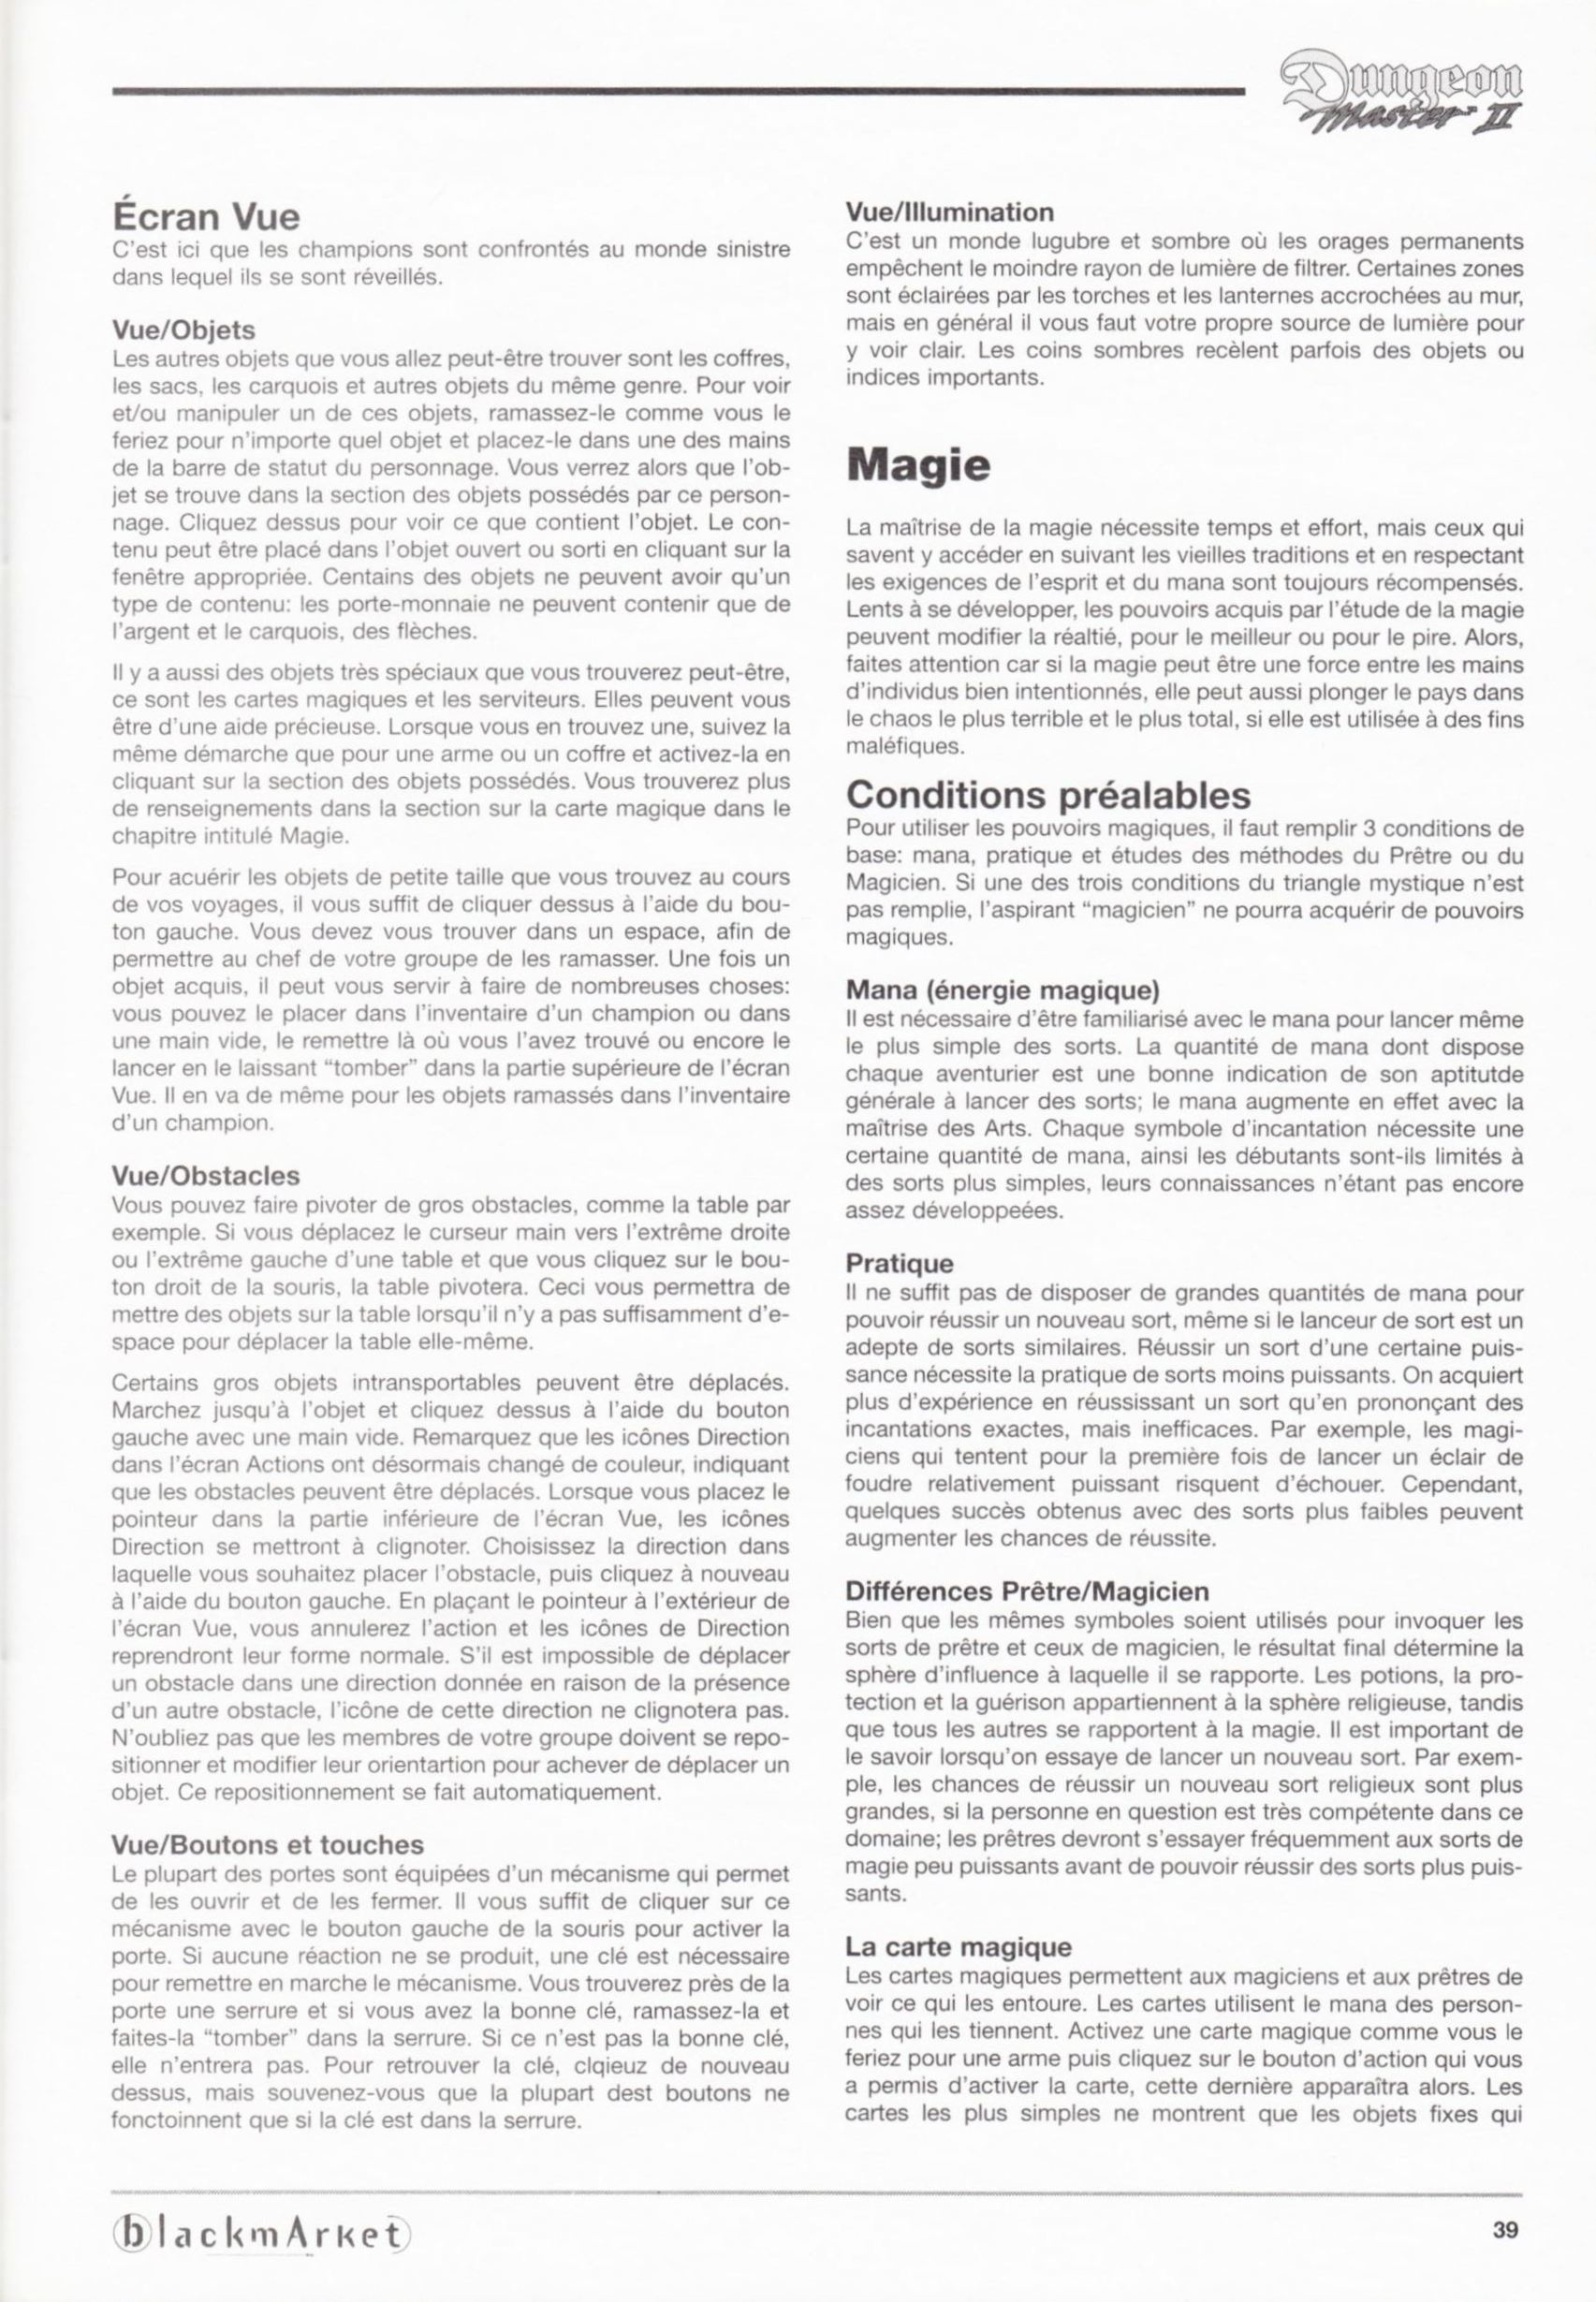 Game - Dungeon Master II - DE - PC - Blackmarket With Manual - Manual - Page 041 - Scan